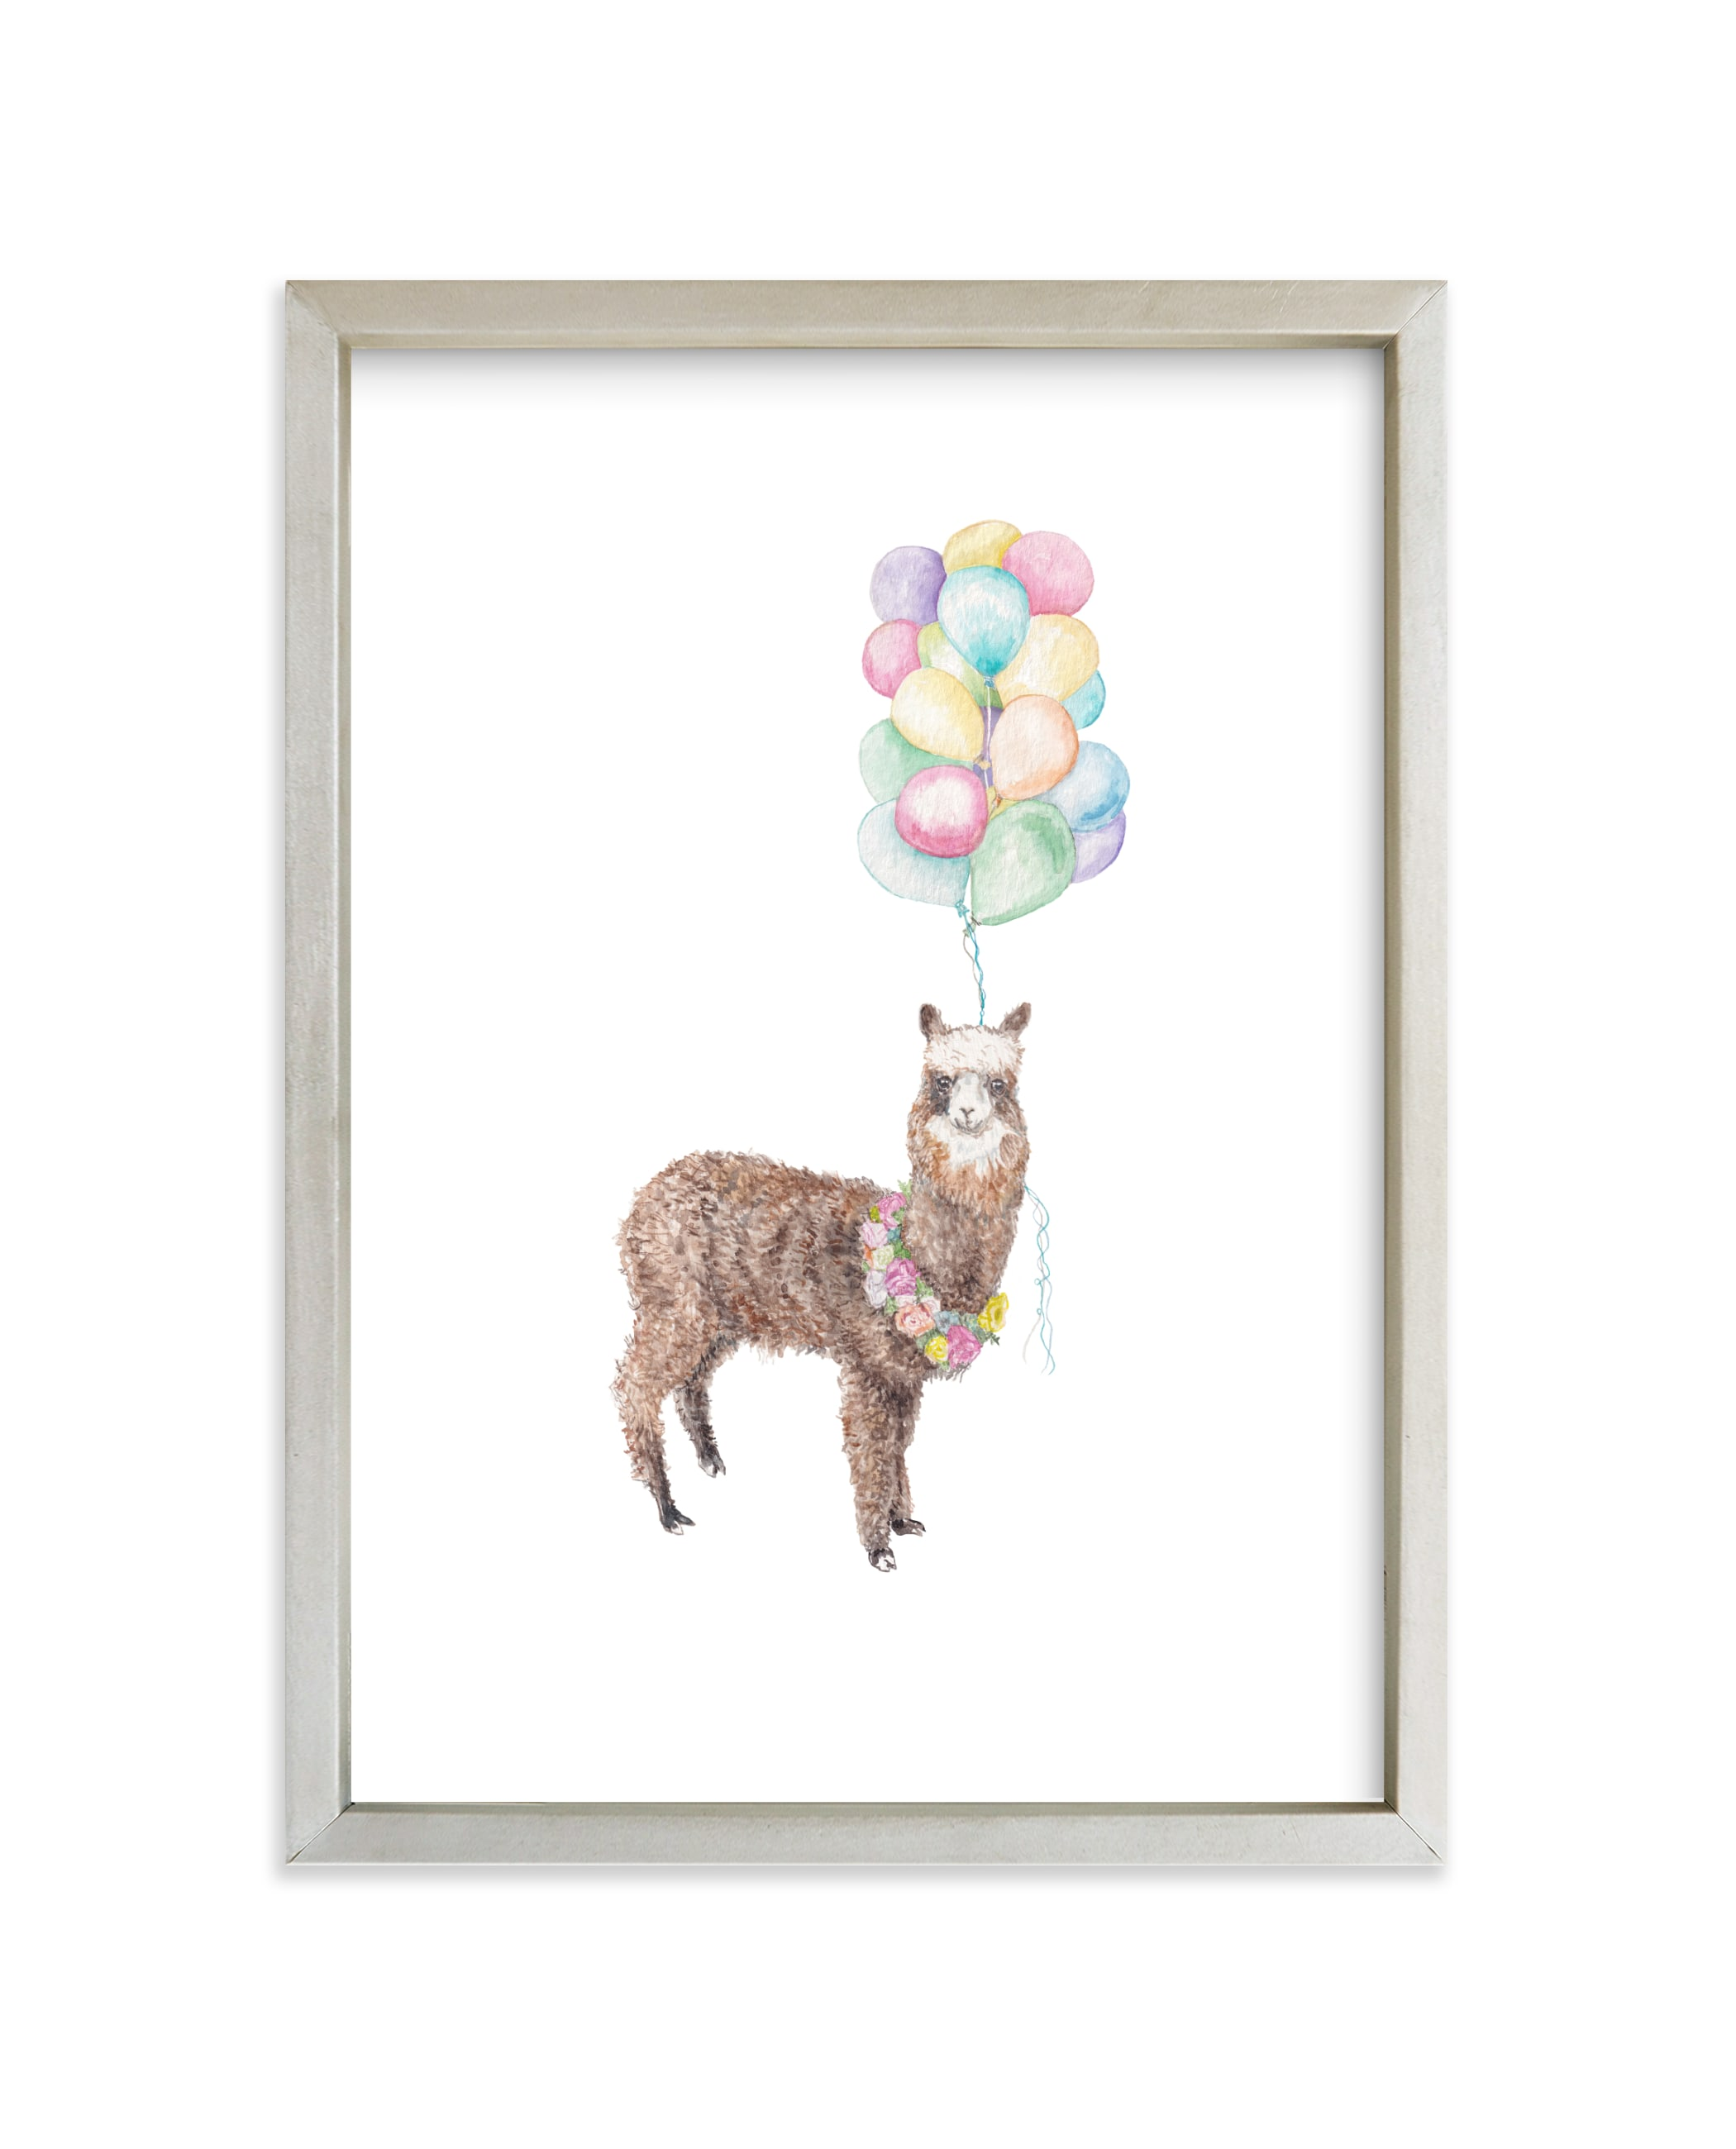 """Watercolor Llama With Balloons & Flowers"" - Art Print by Lauren Rogoff in beautiful frame options and a variety of sizes."